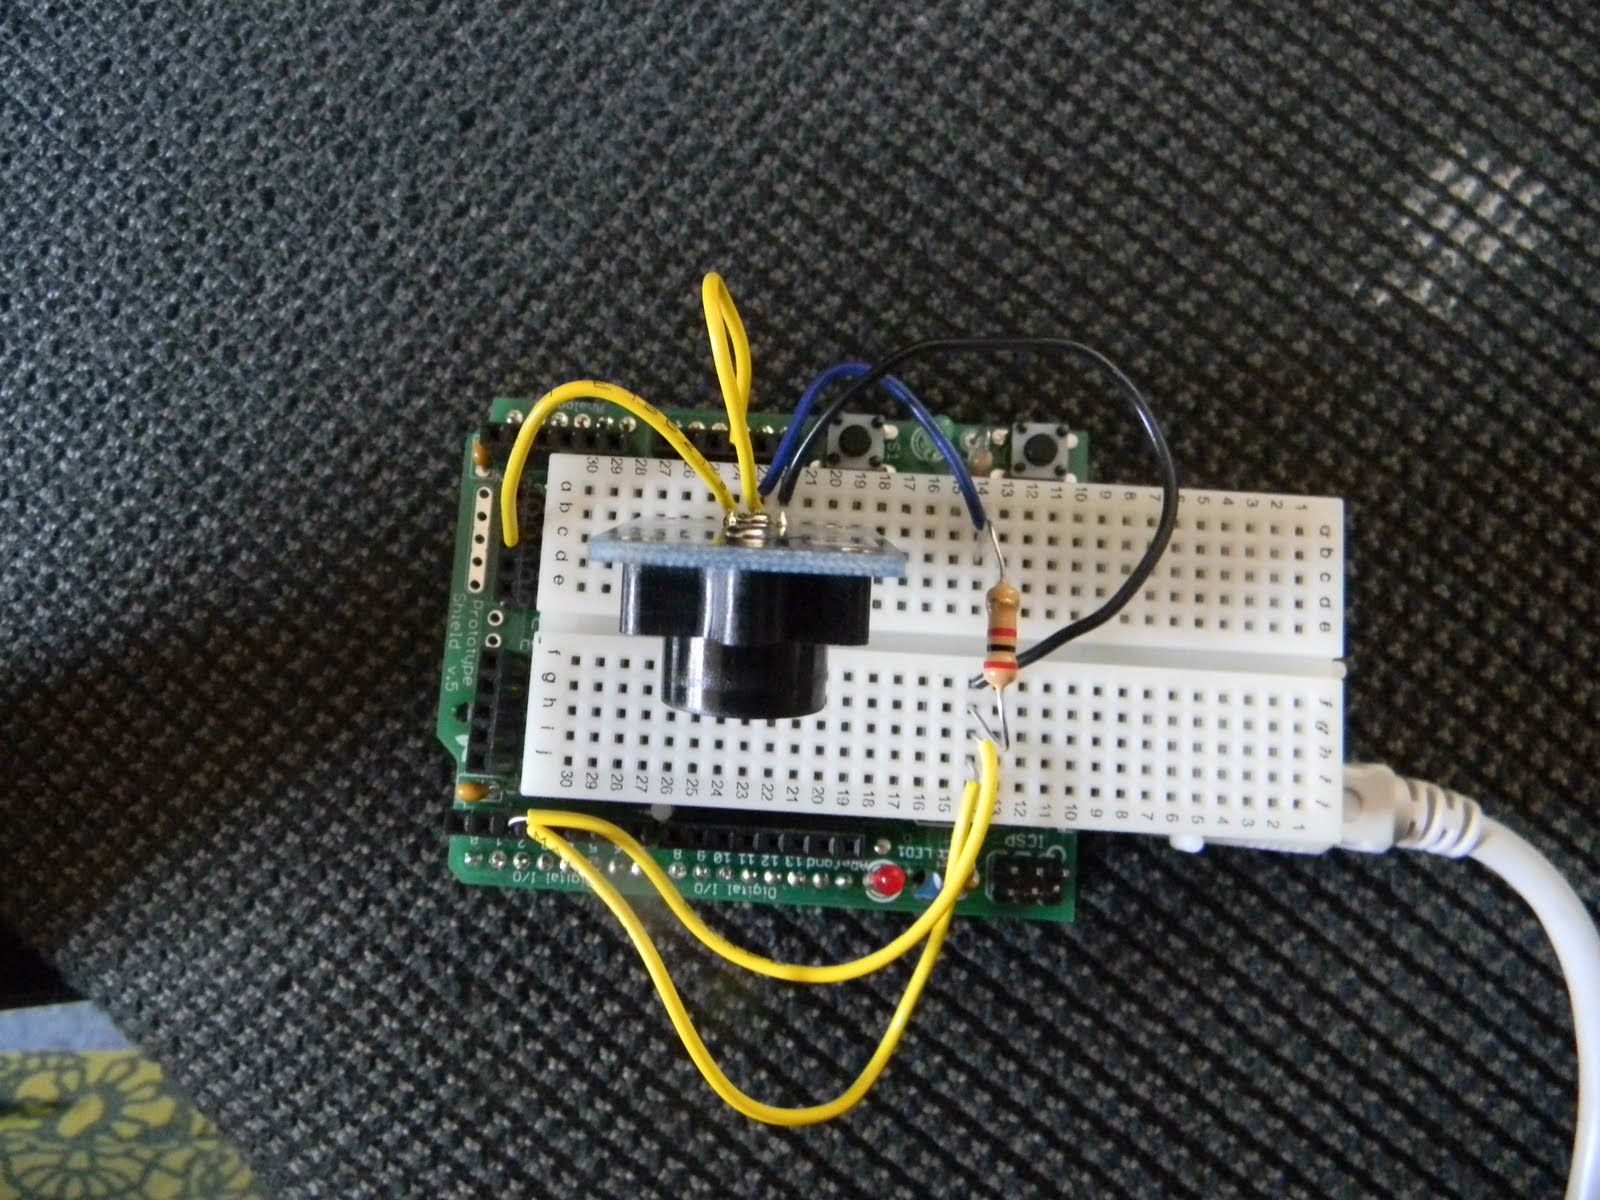 Circuitry + Arduino + Us = Medical Devices: Lab 3 Circuit Pictures!